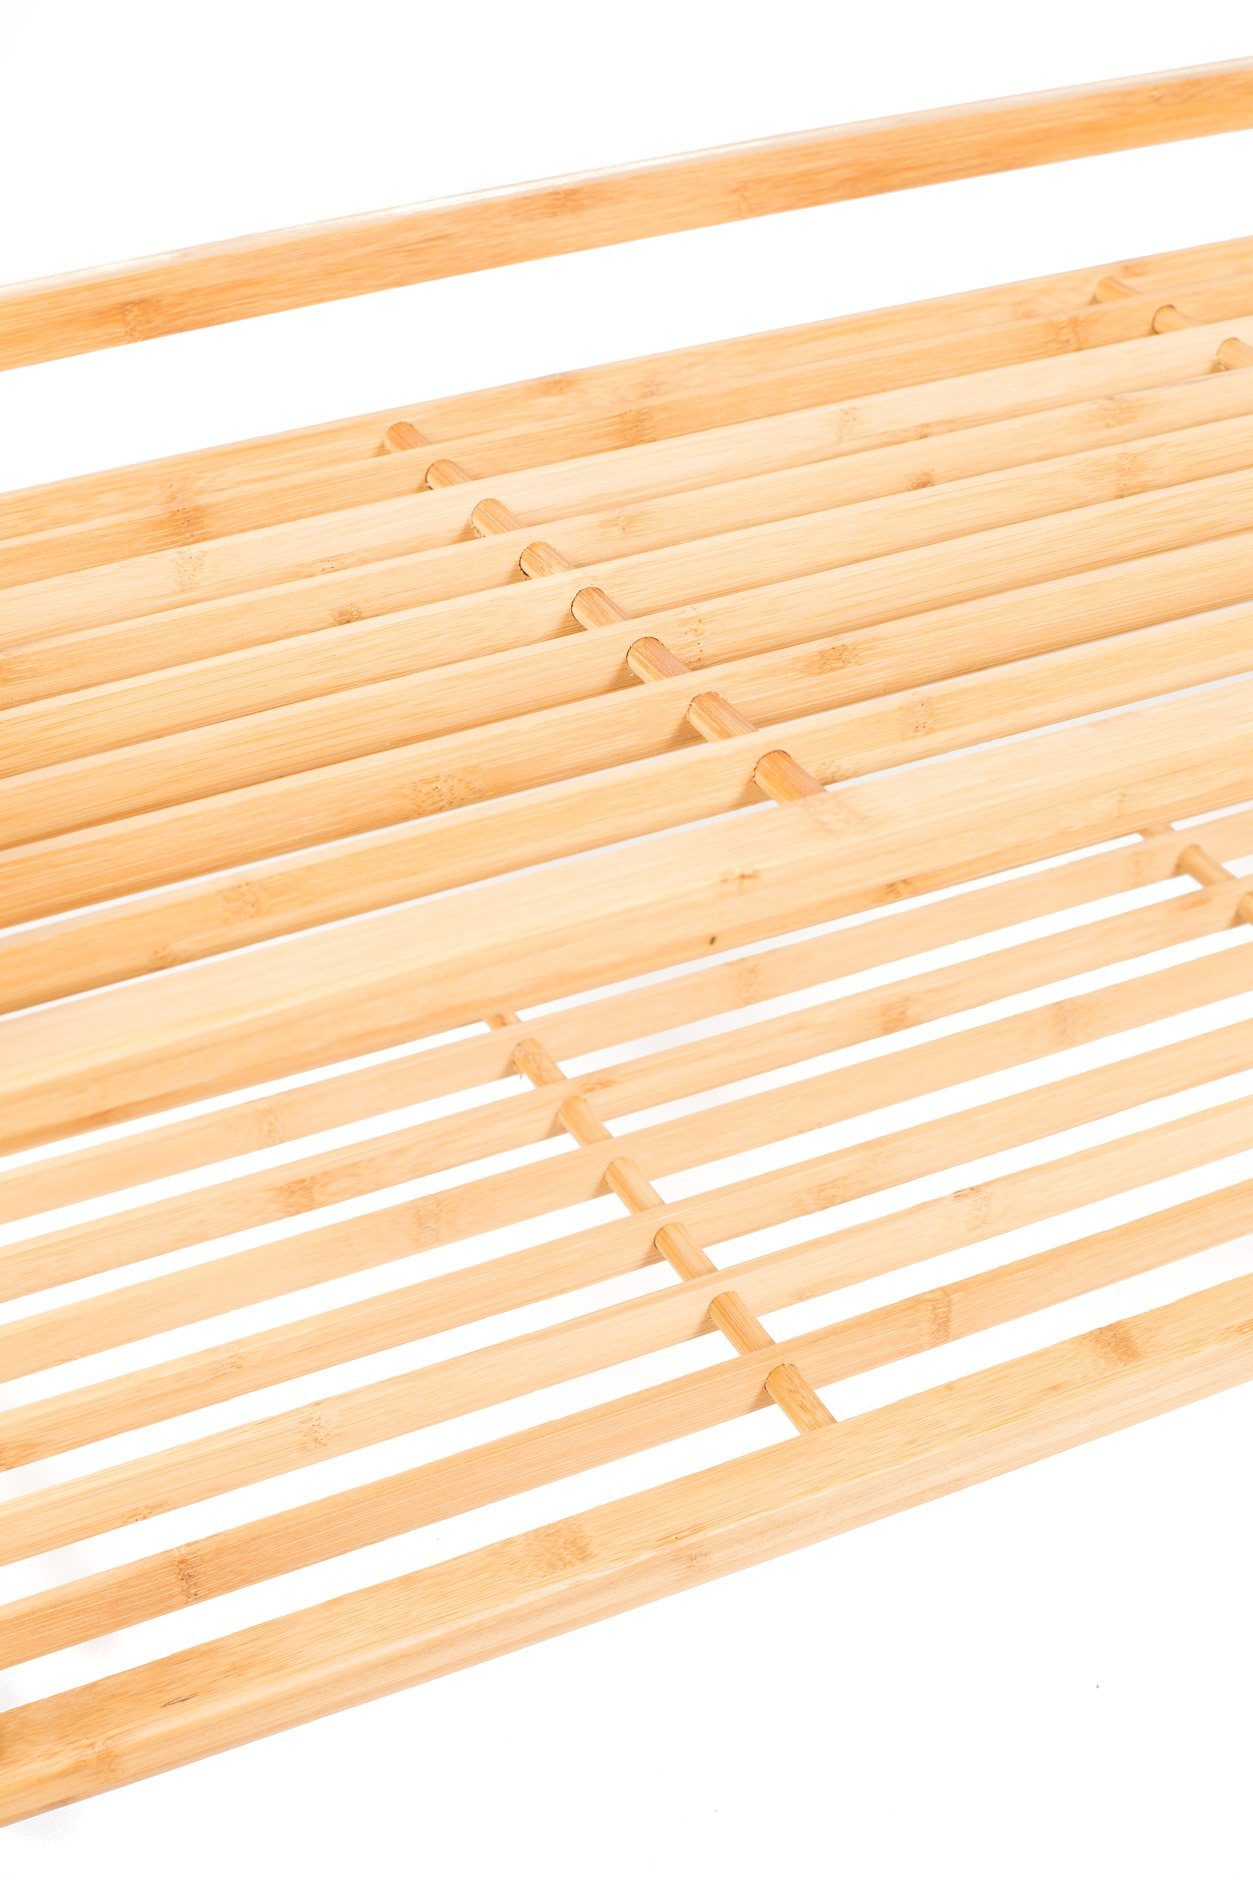 BirdRock Home 2-Tier Bamboo Shoe Rack | Environmentally Friendly | Fits 6-8 Shoes by BirdRock Home (Image #2)